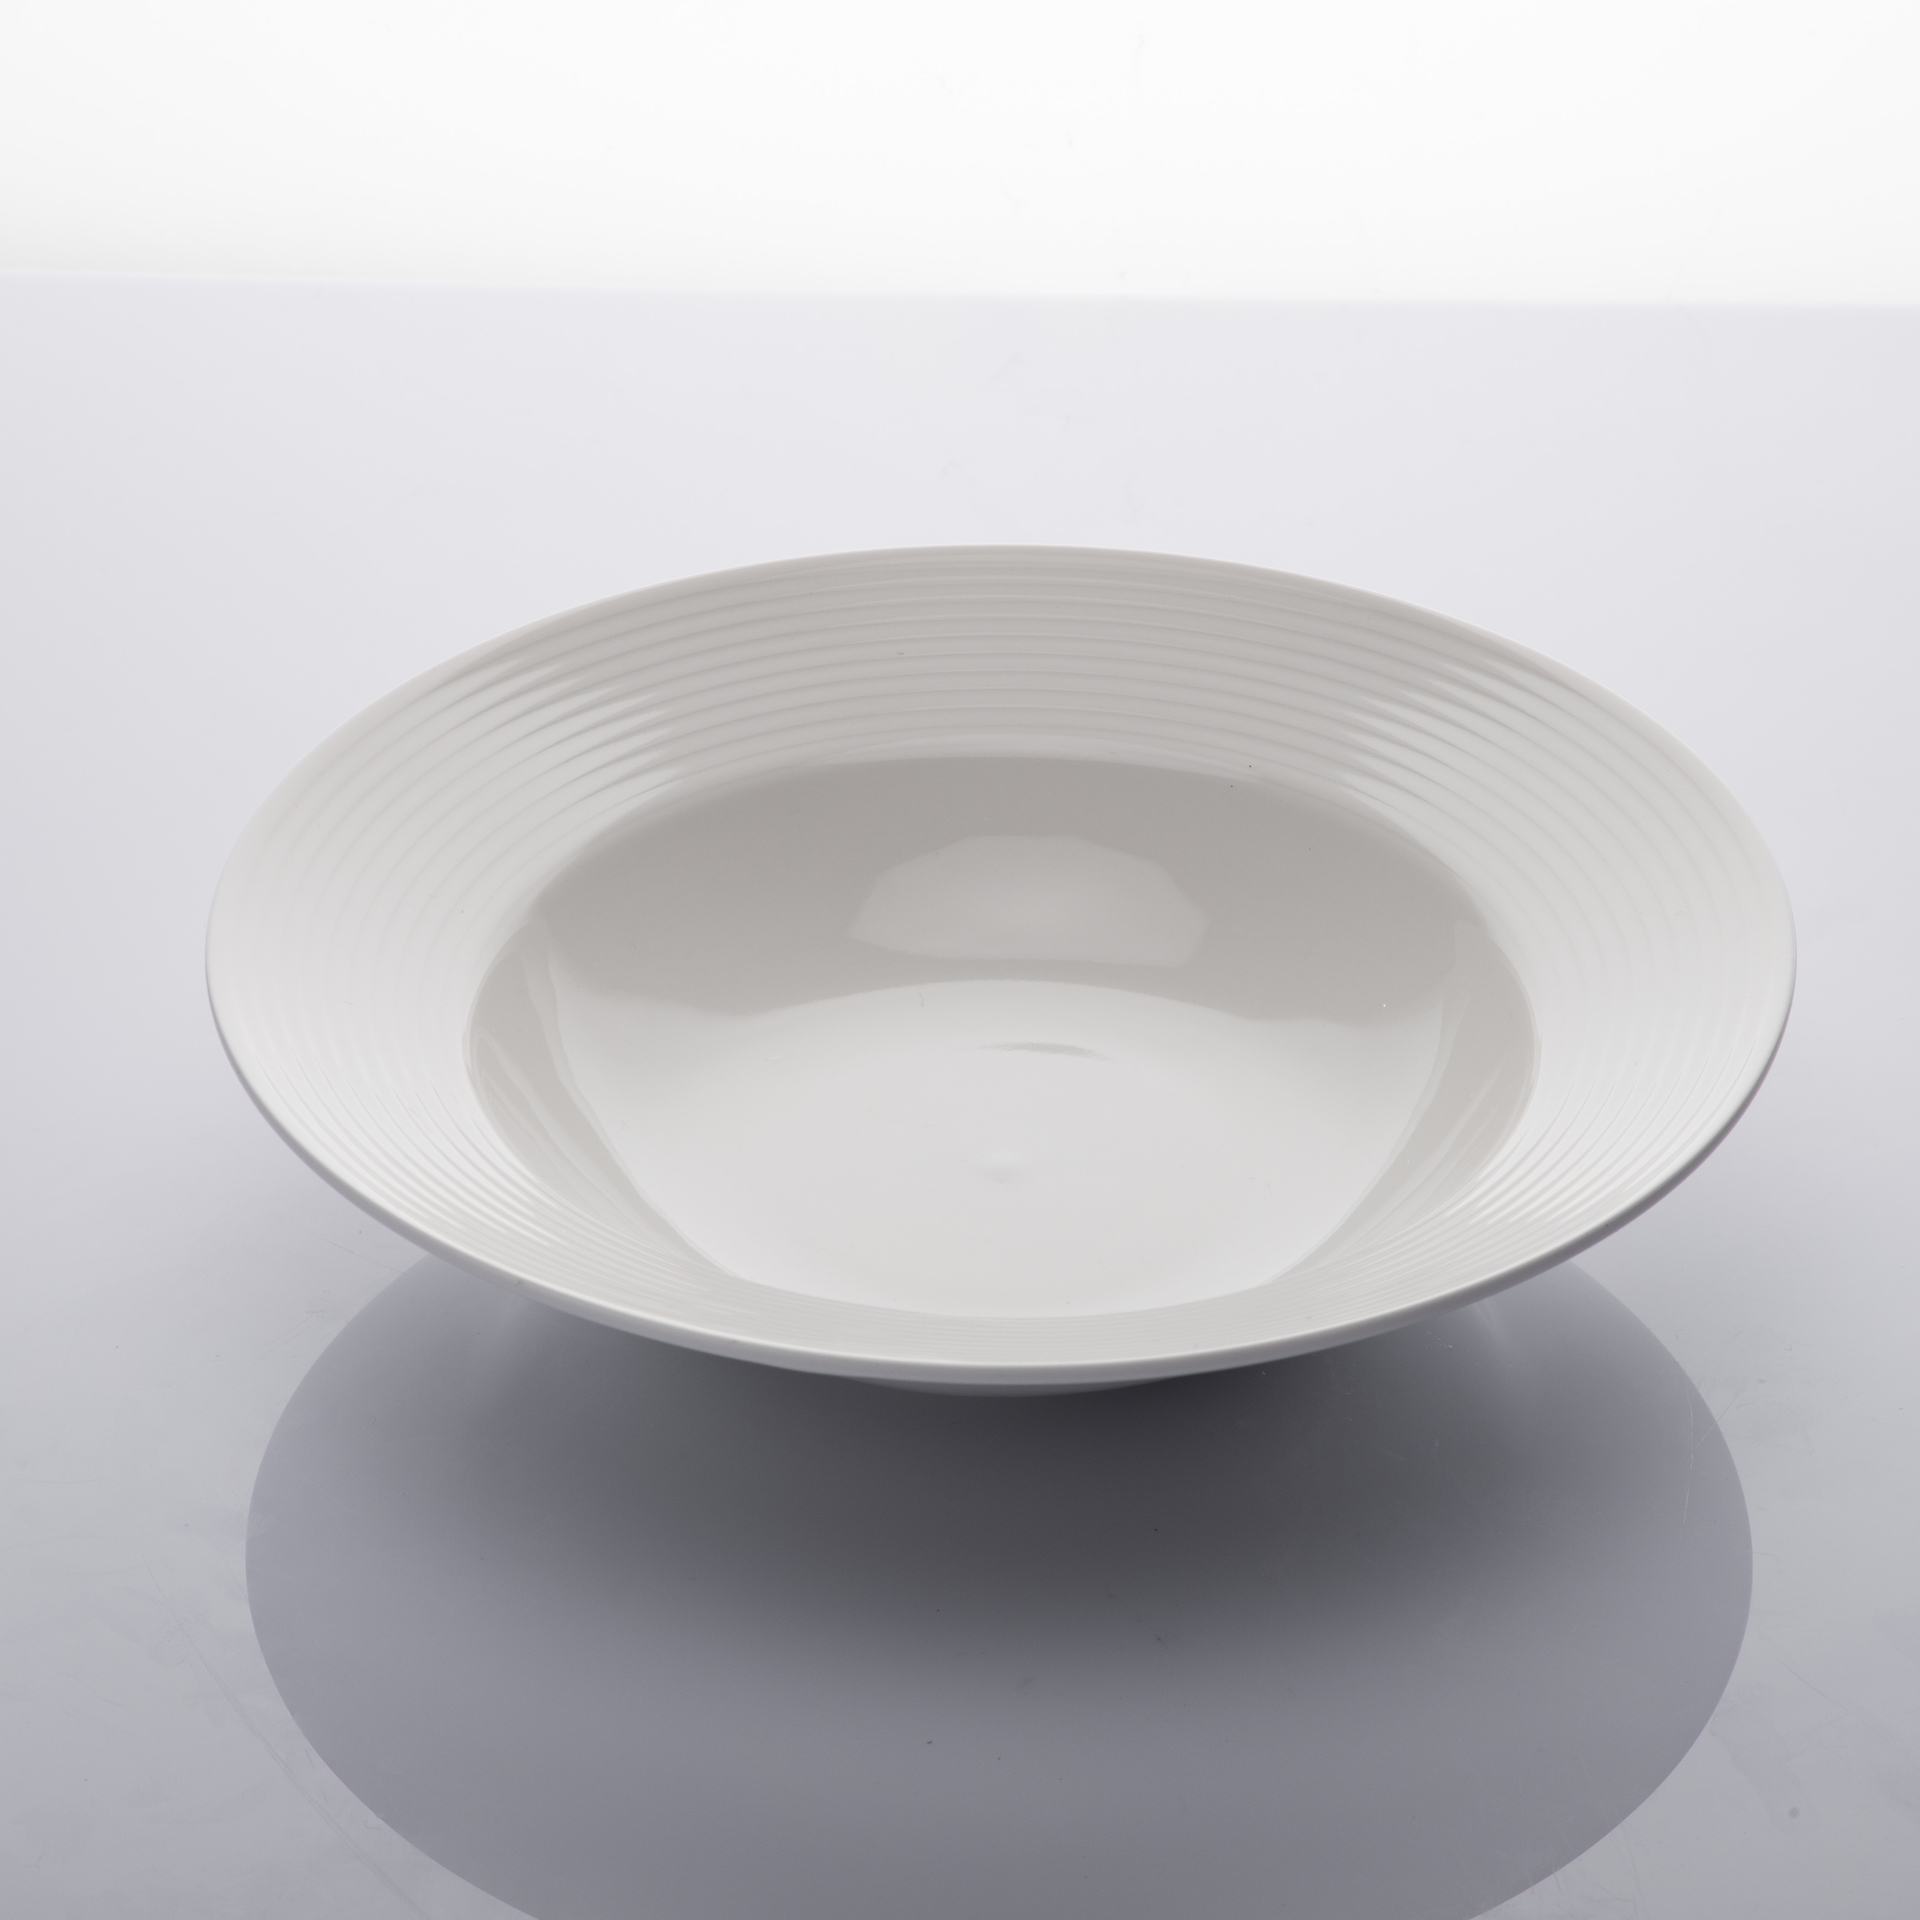 Luxurious Chaozhou Factory Bulk Dinner Plates Pasta Plate, Moden Strong Lounge Custom Ceramic Plate Coupe Bowl Deep